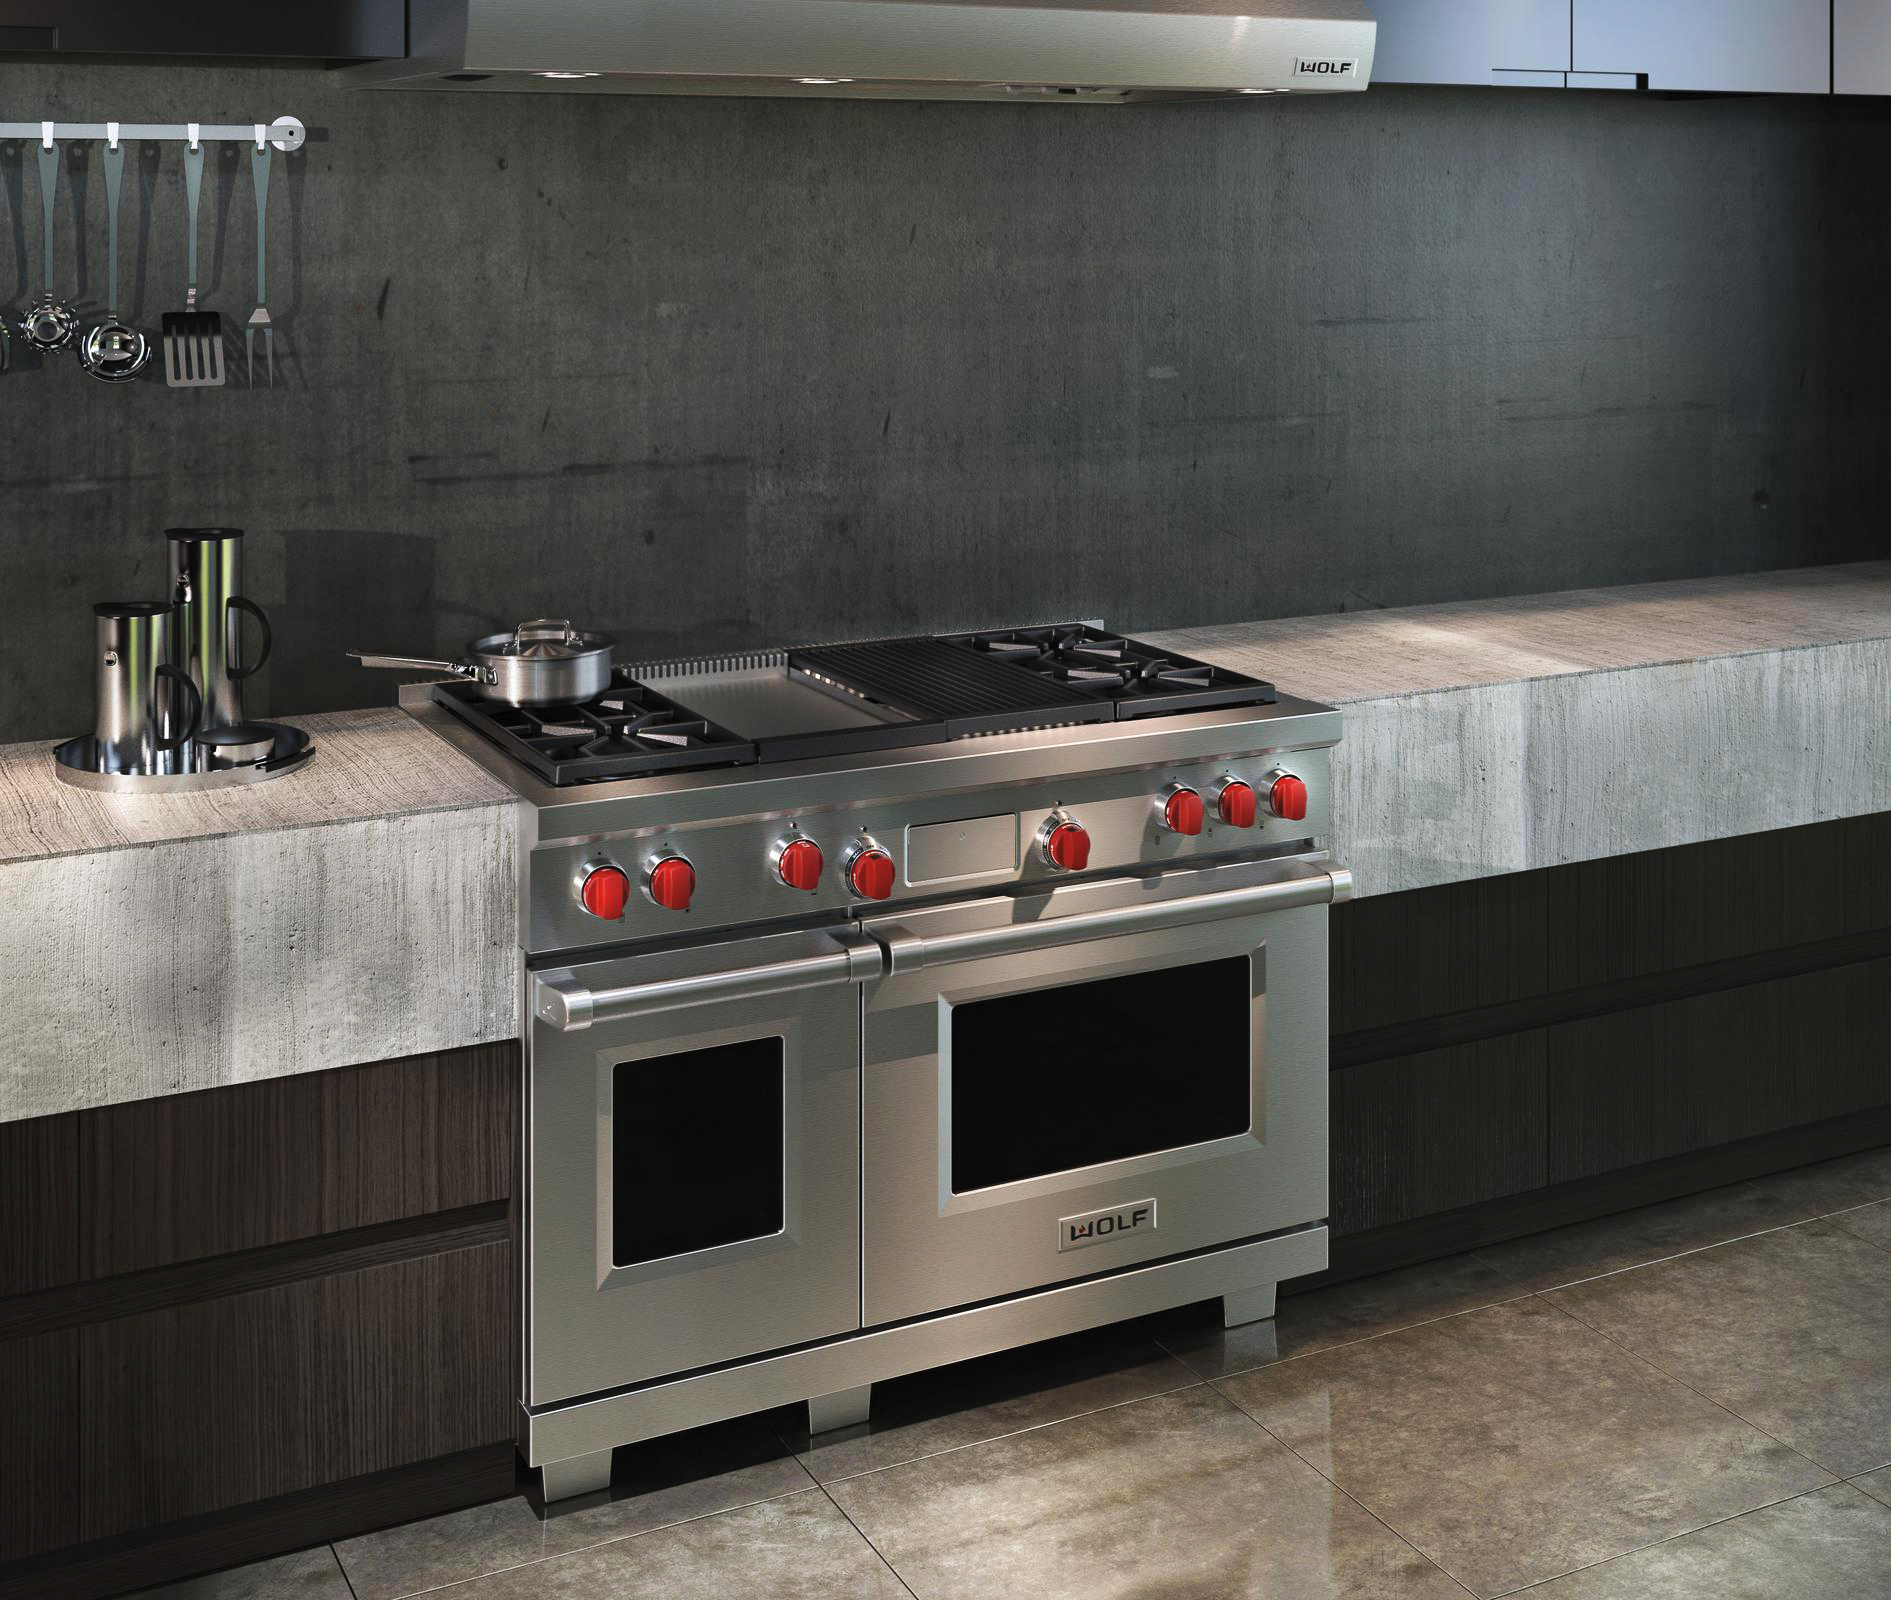 8 - DUAL FUEL RANGE WITH CHARBROILER AND GRIDDLE